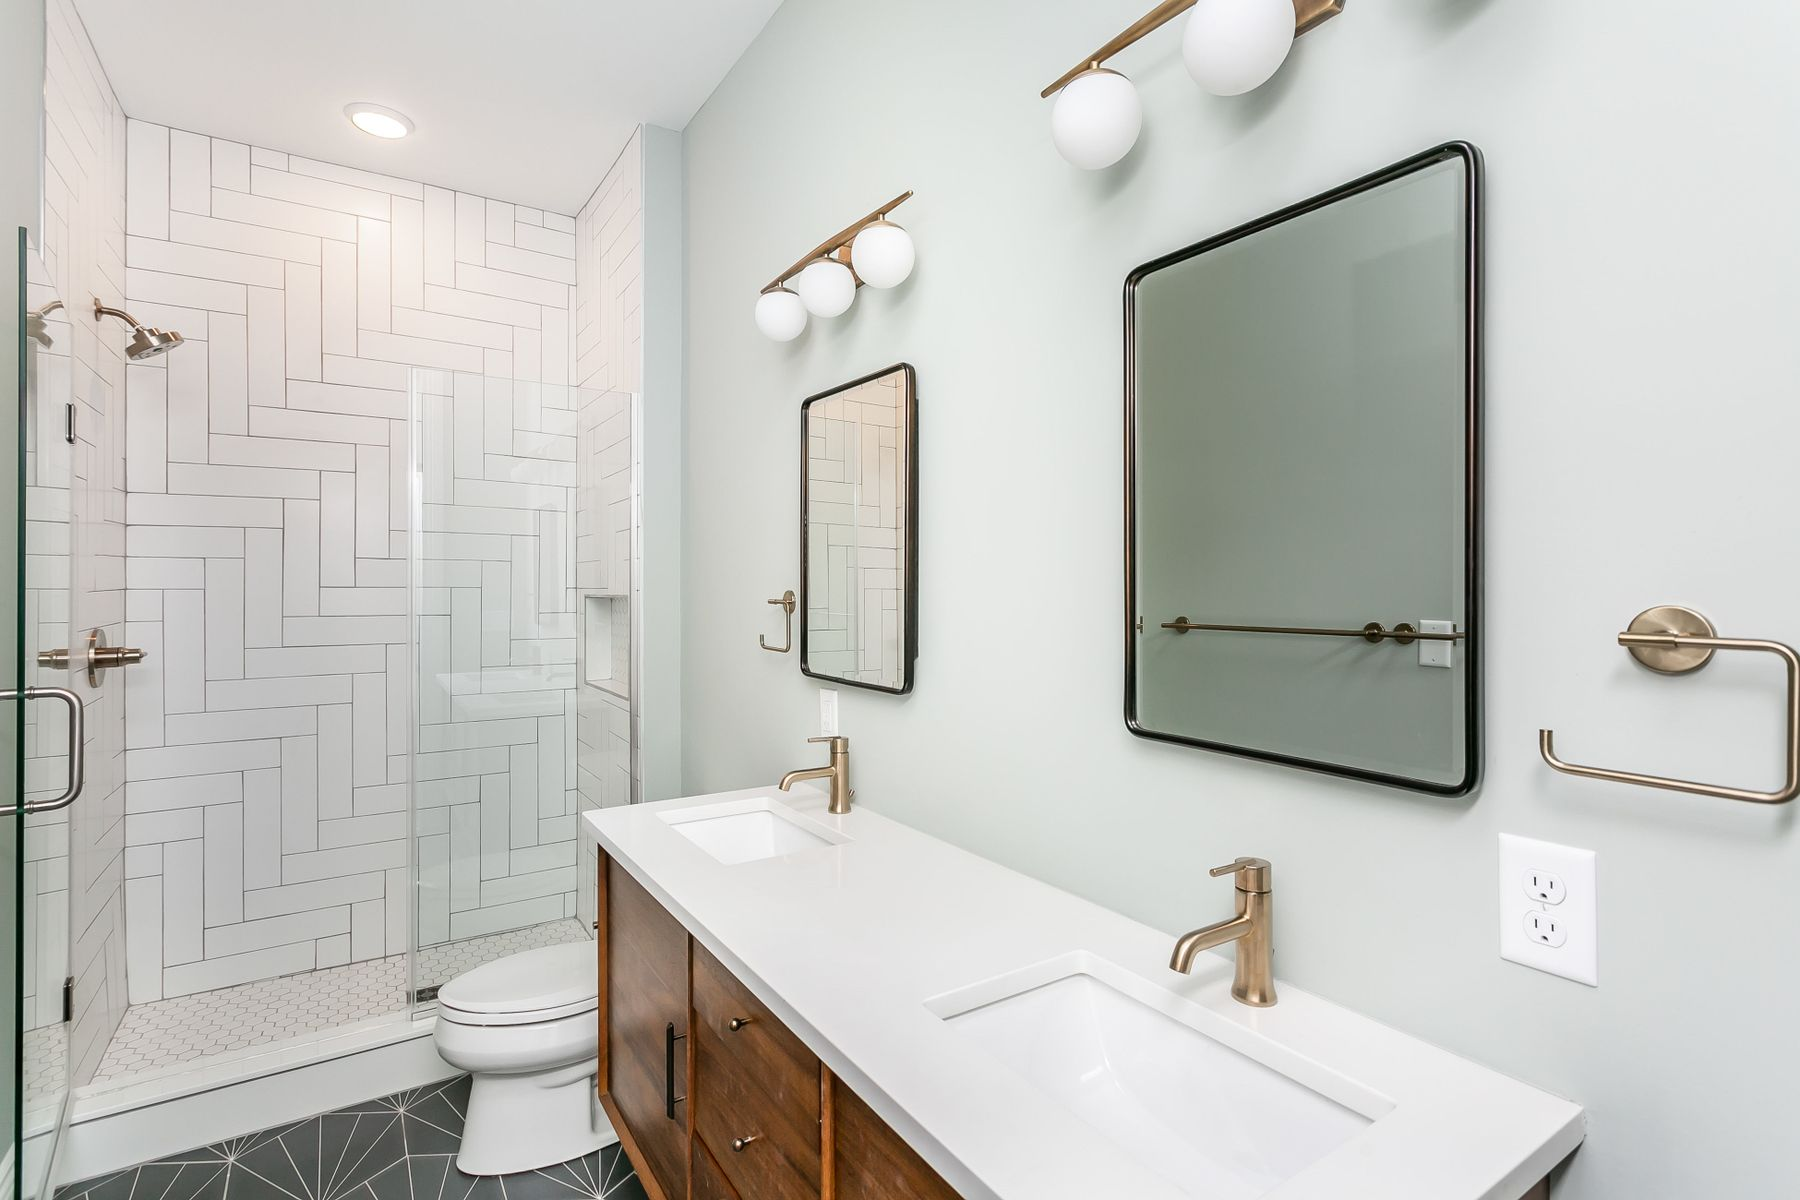 Bathroom image of brand new redesign in Charles Village